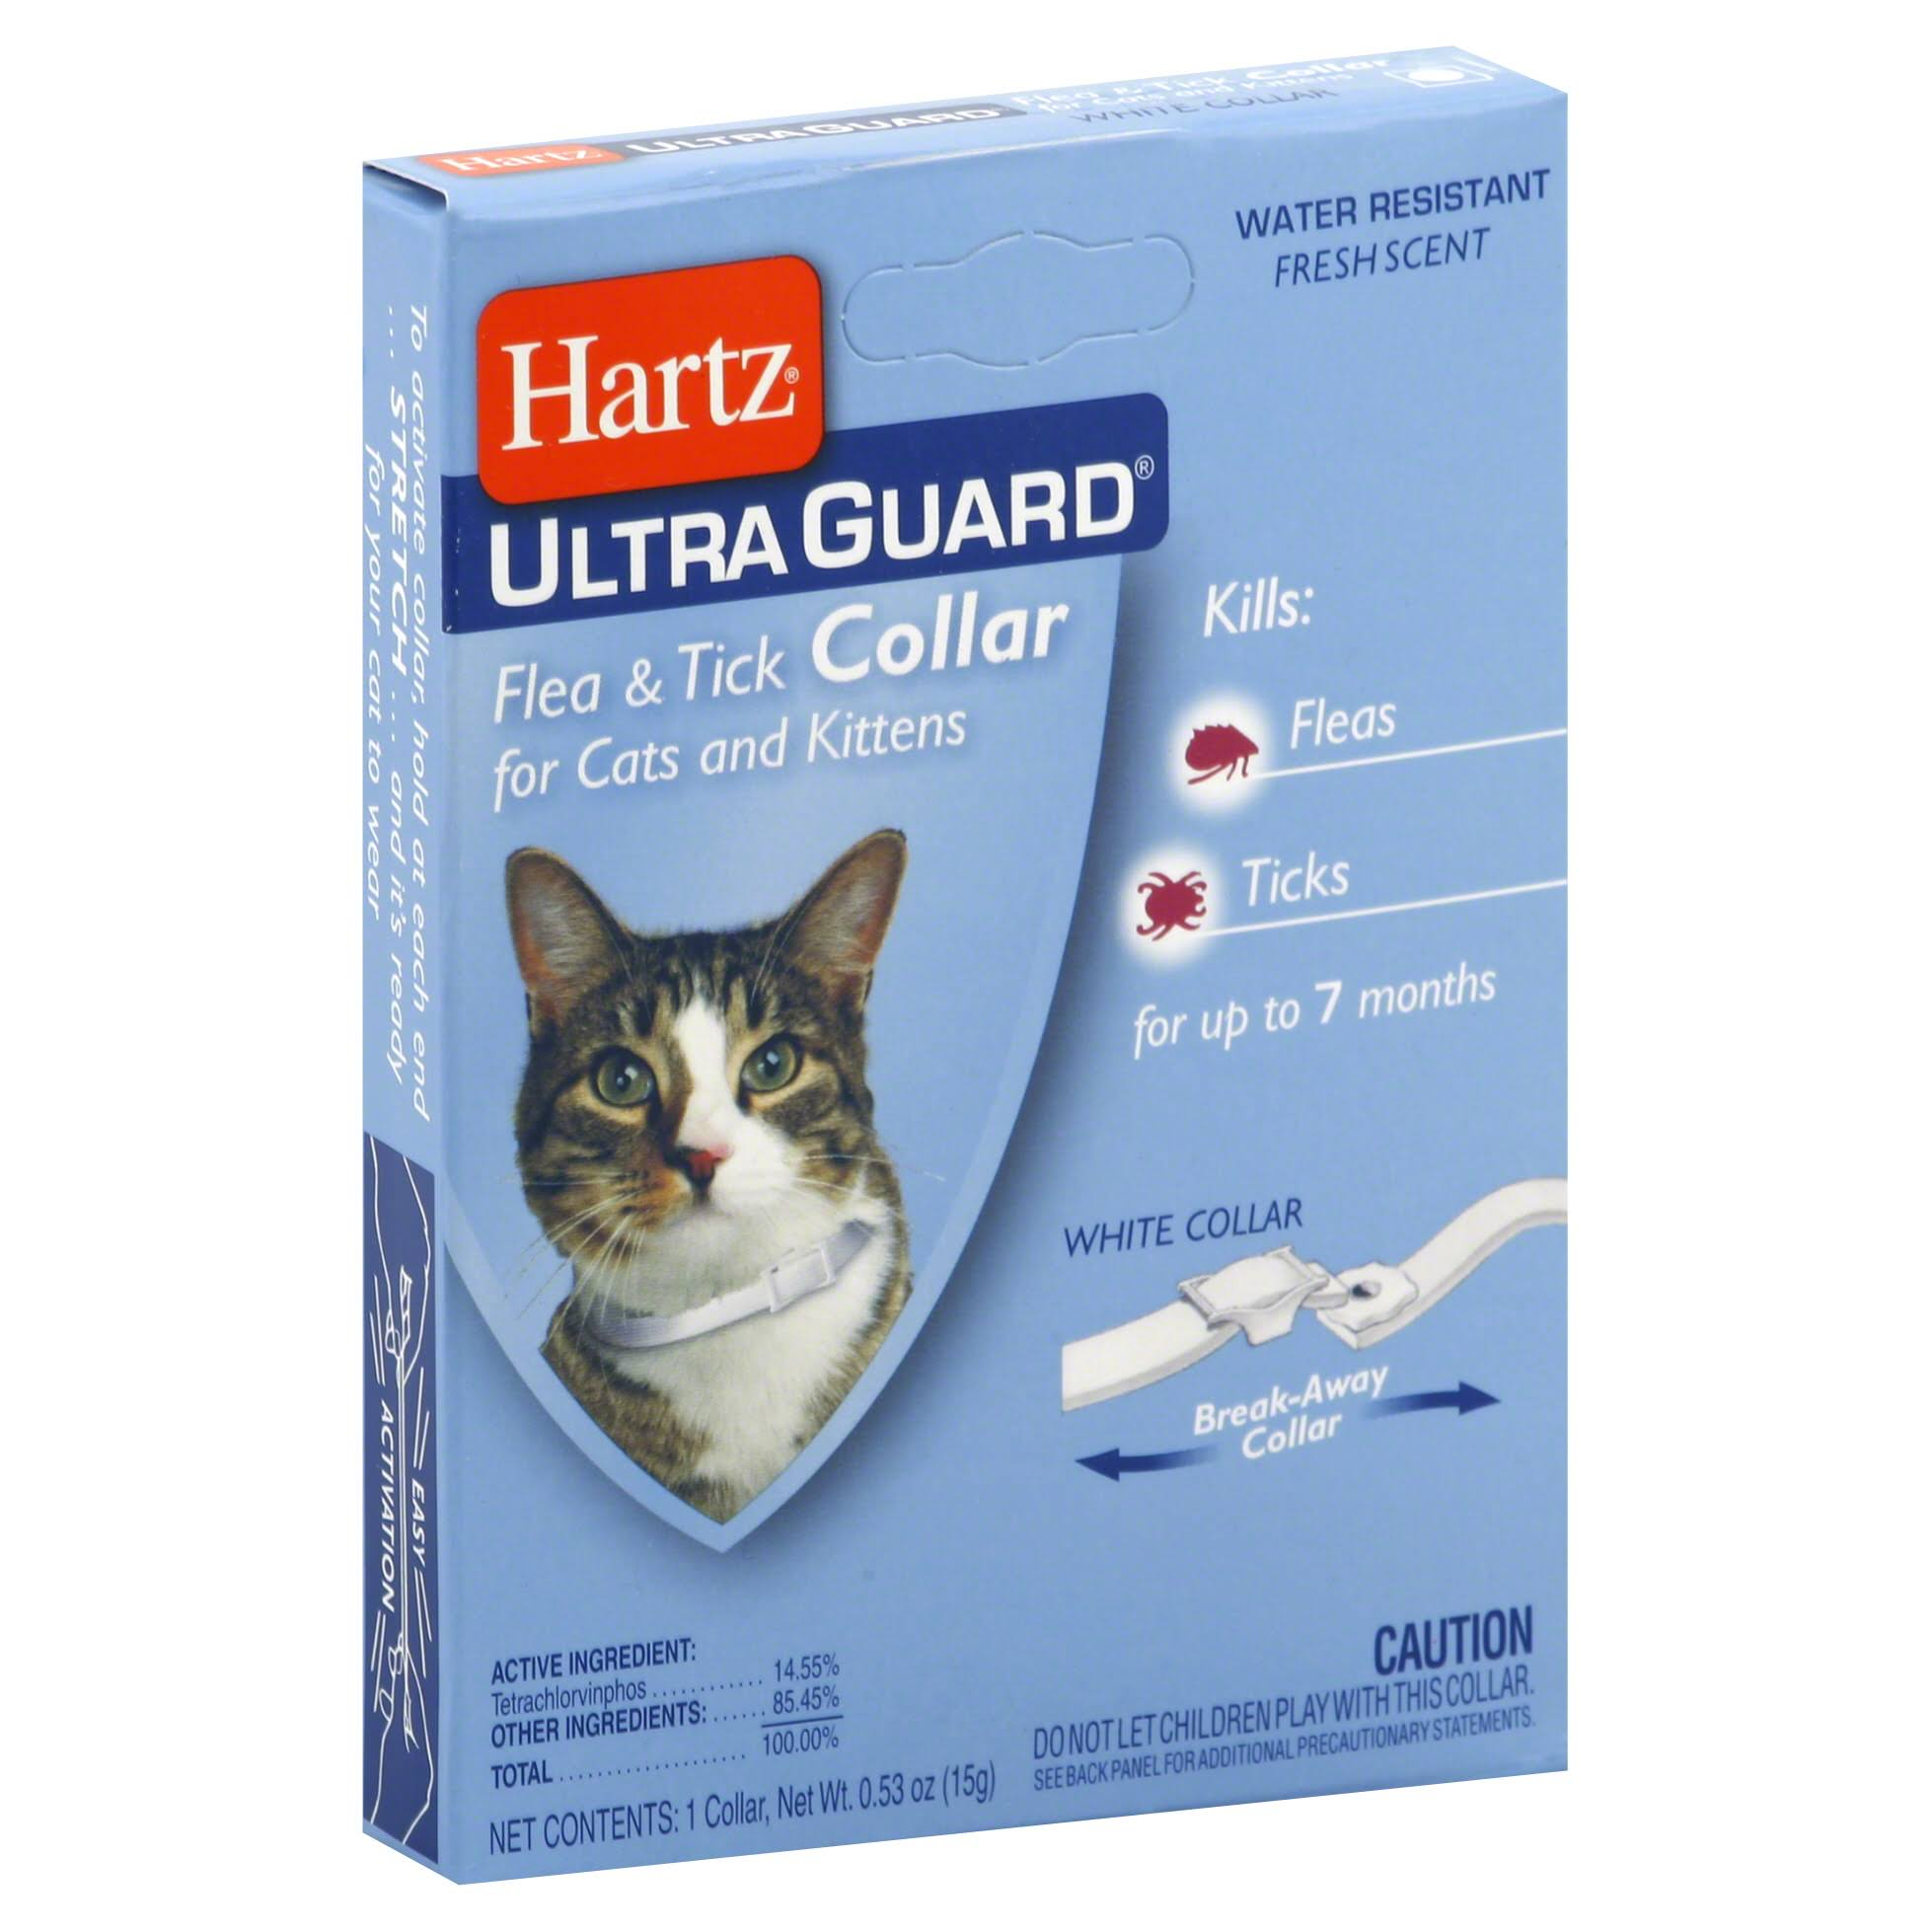 Hartz UltraGuard Flea and Tick Cat and Kitten Collar - White